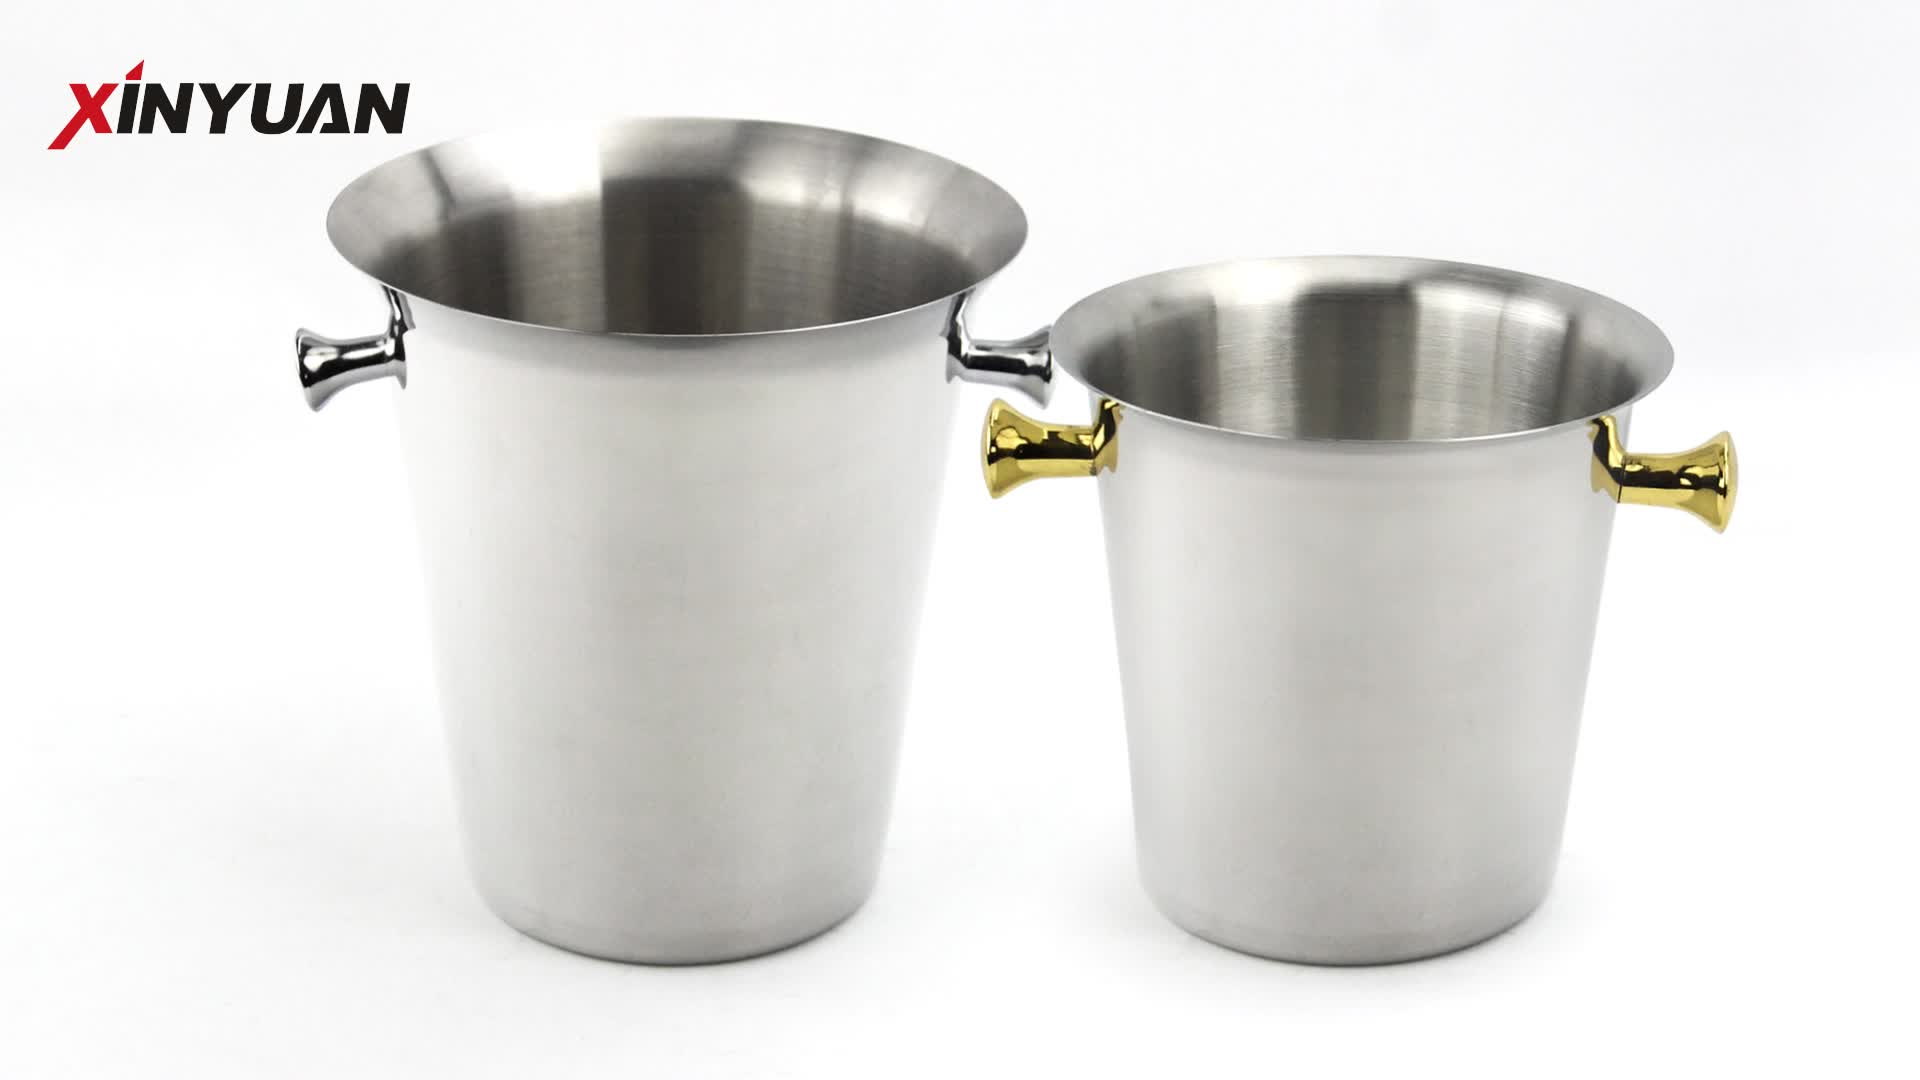 2019 hot new products stainless steel 샴페인 야외 ice bucket